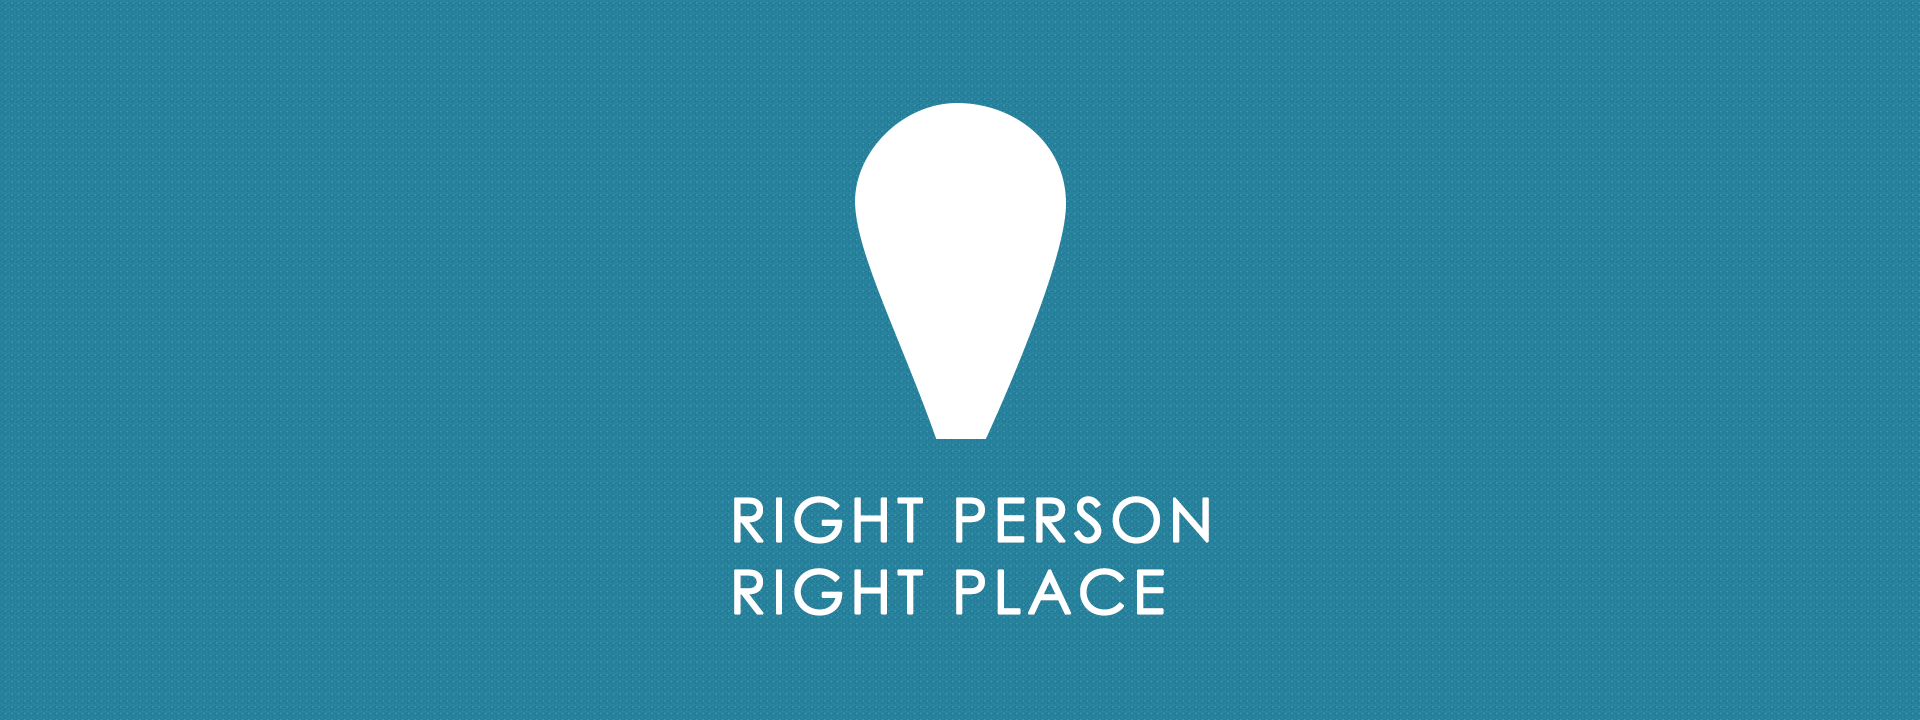 right person right place